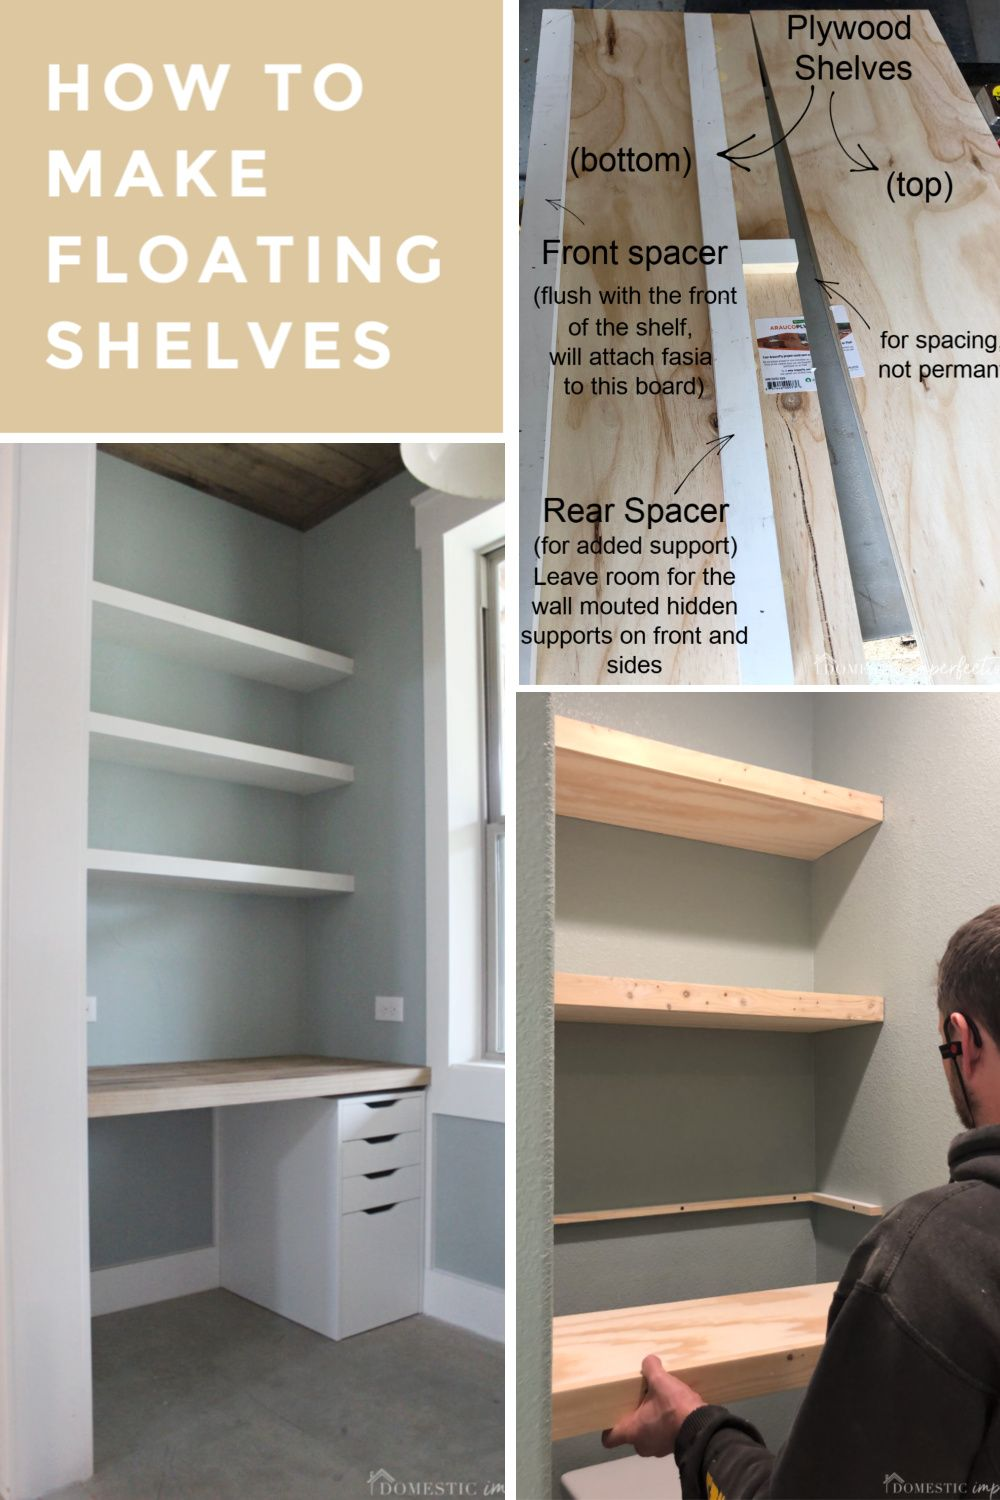 How To Build Thick Floating Shelves From Plywood Plywood Shelves Floating Shelves Shelves